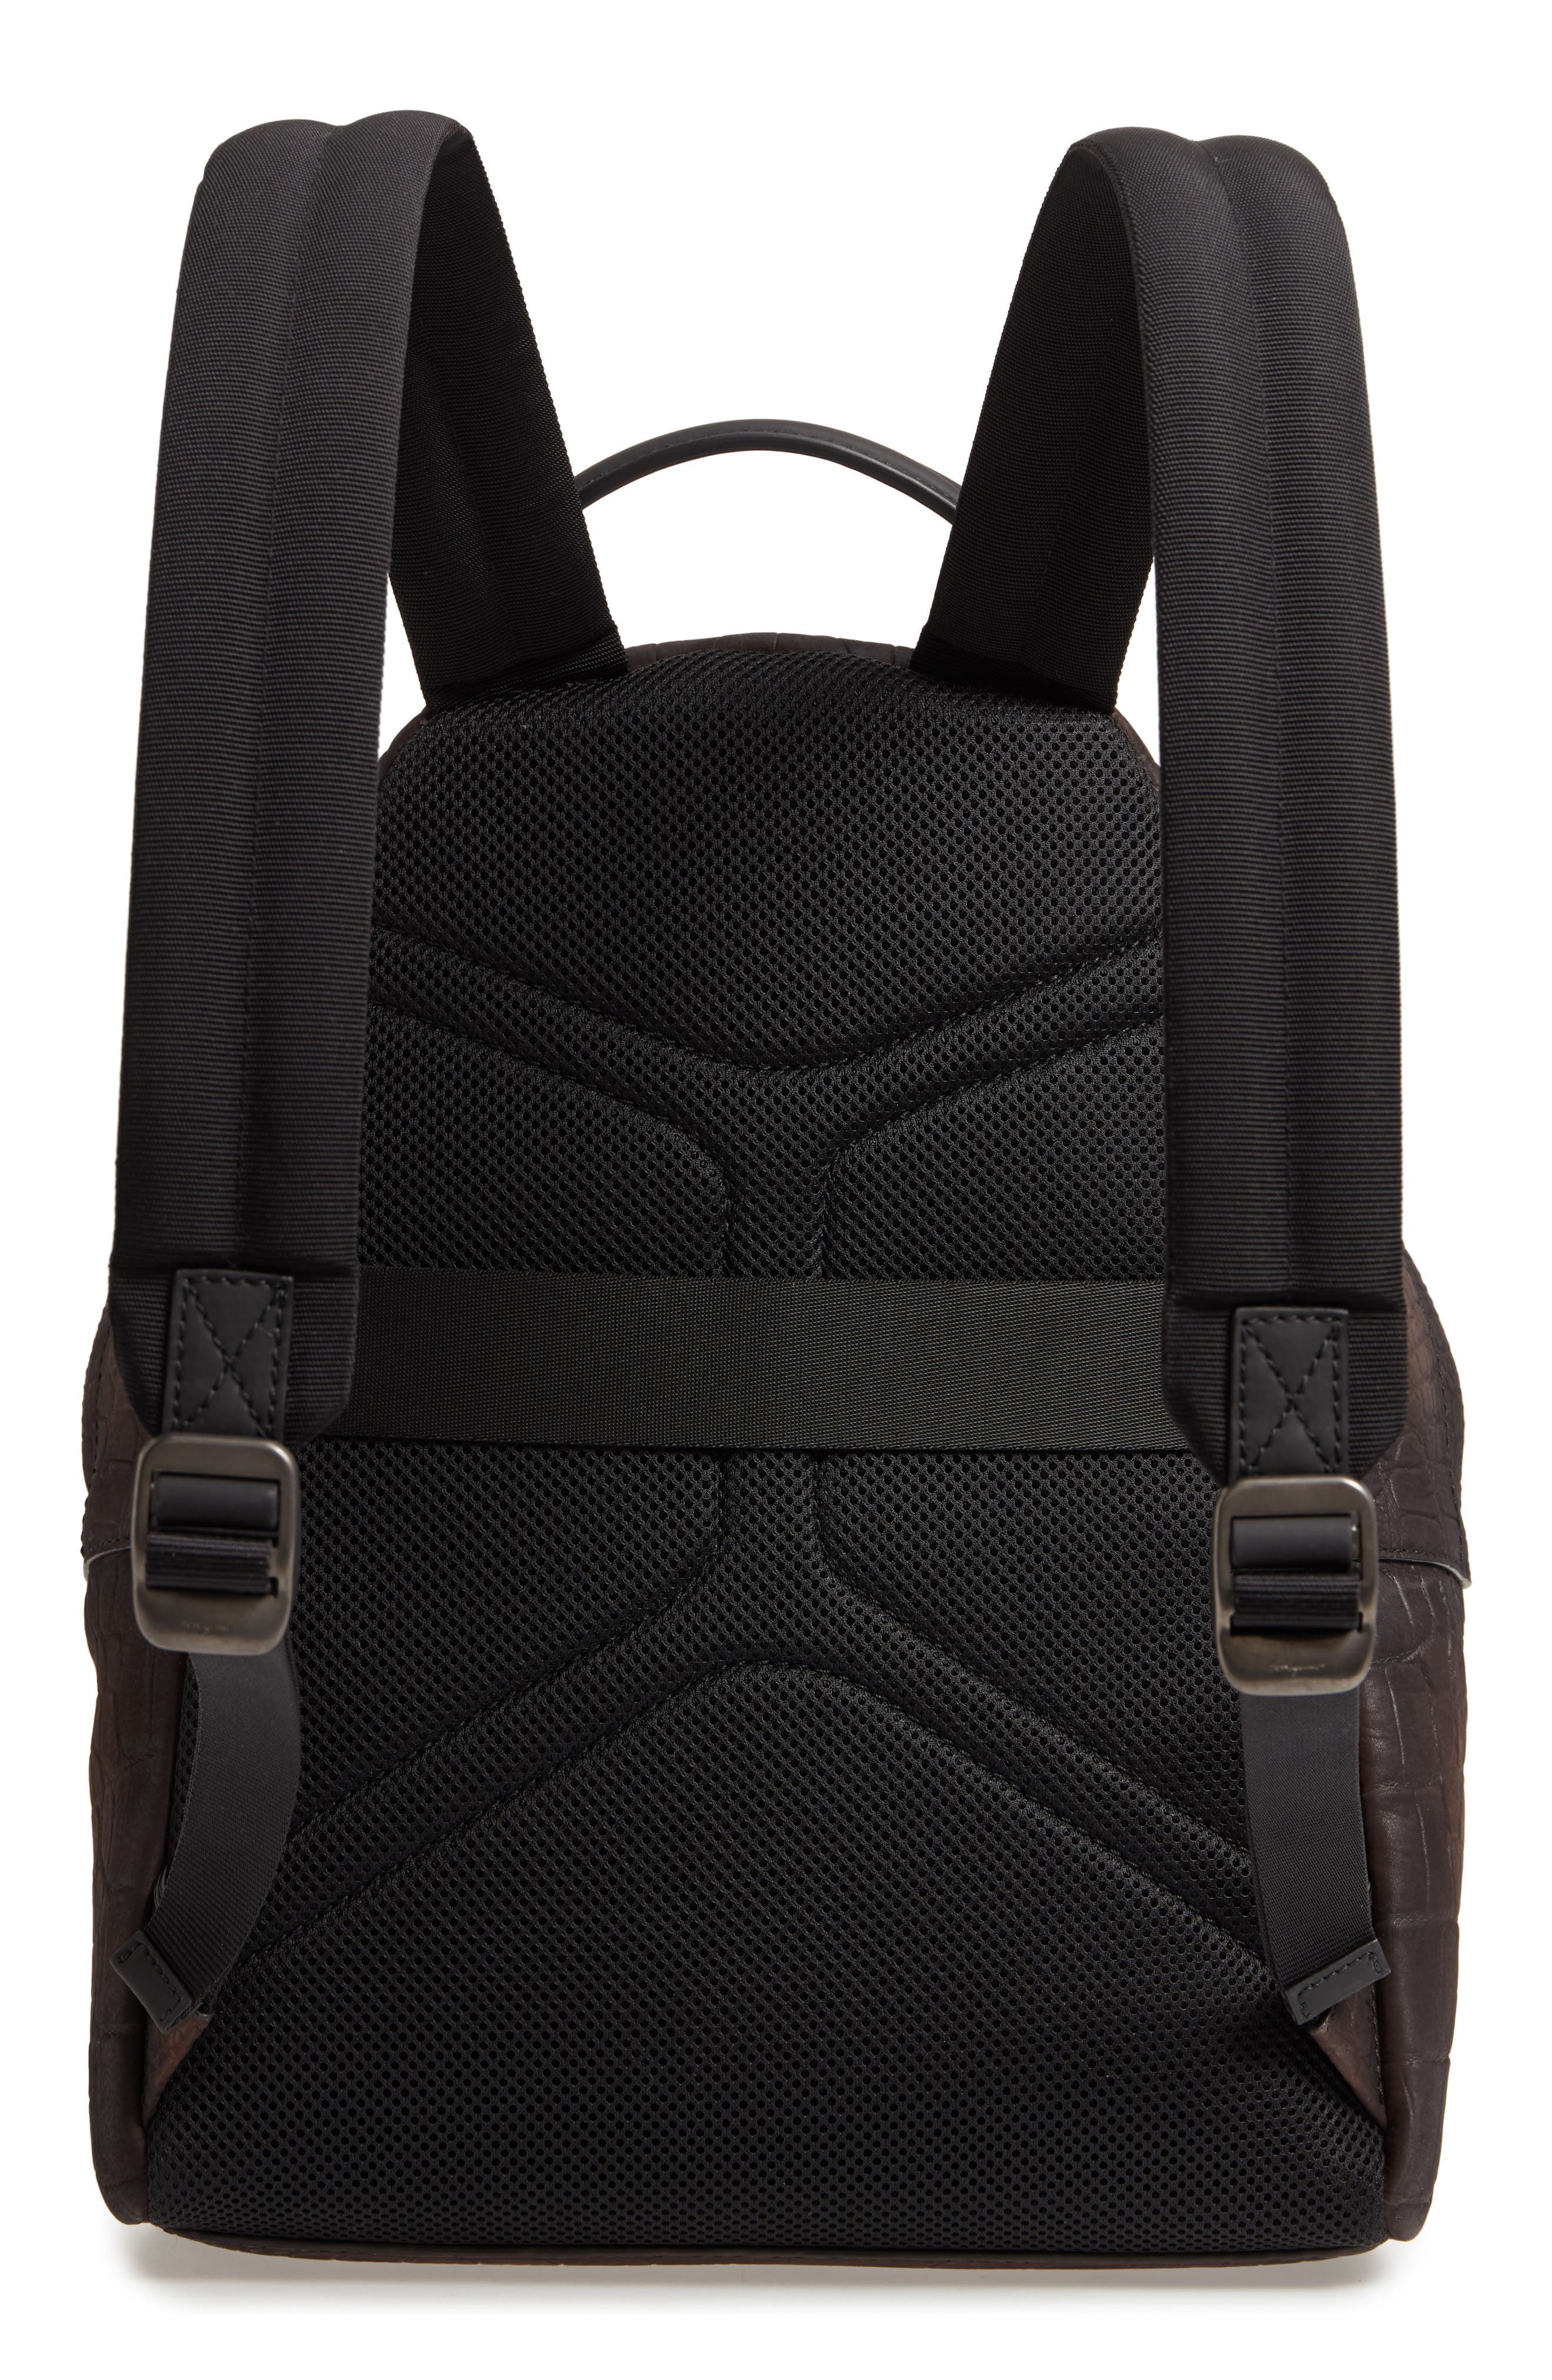 Firenze Leather Backpack,                             Alternate thumbnail 3, color,                             MORO